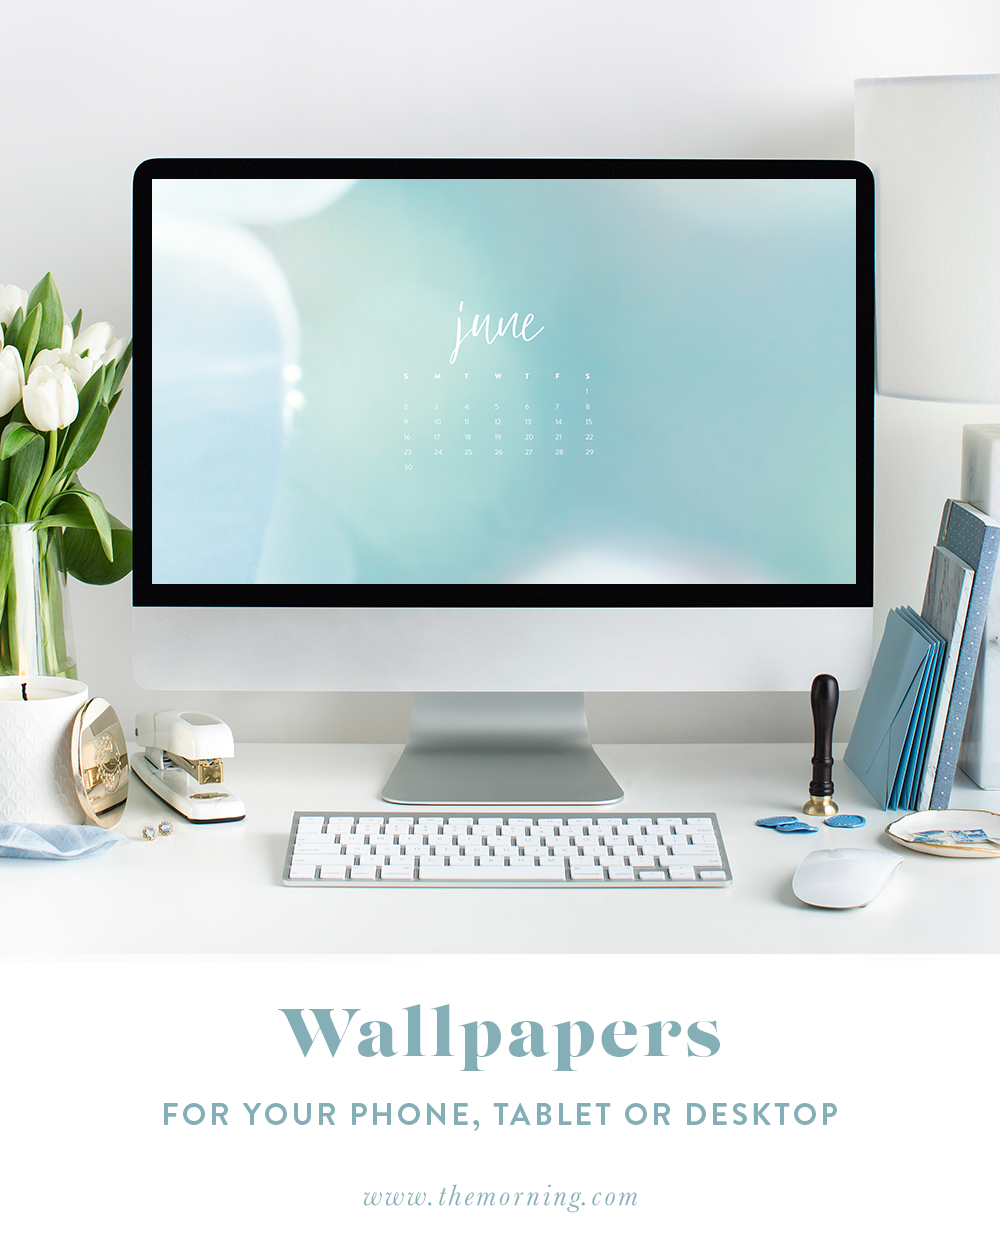 June Backgrounds Free Downloadable For Your Tech The Morning